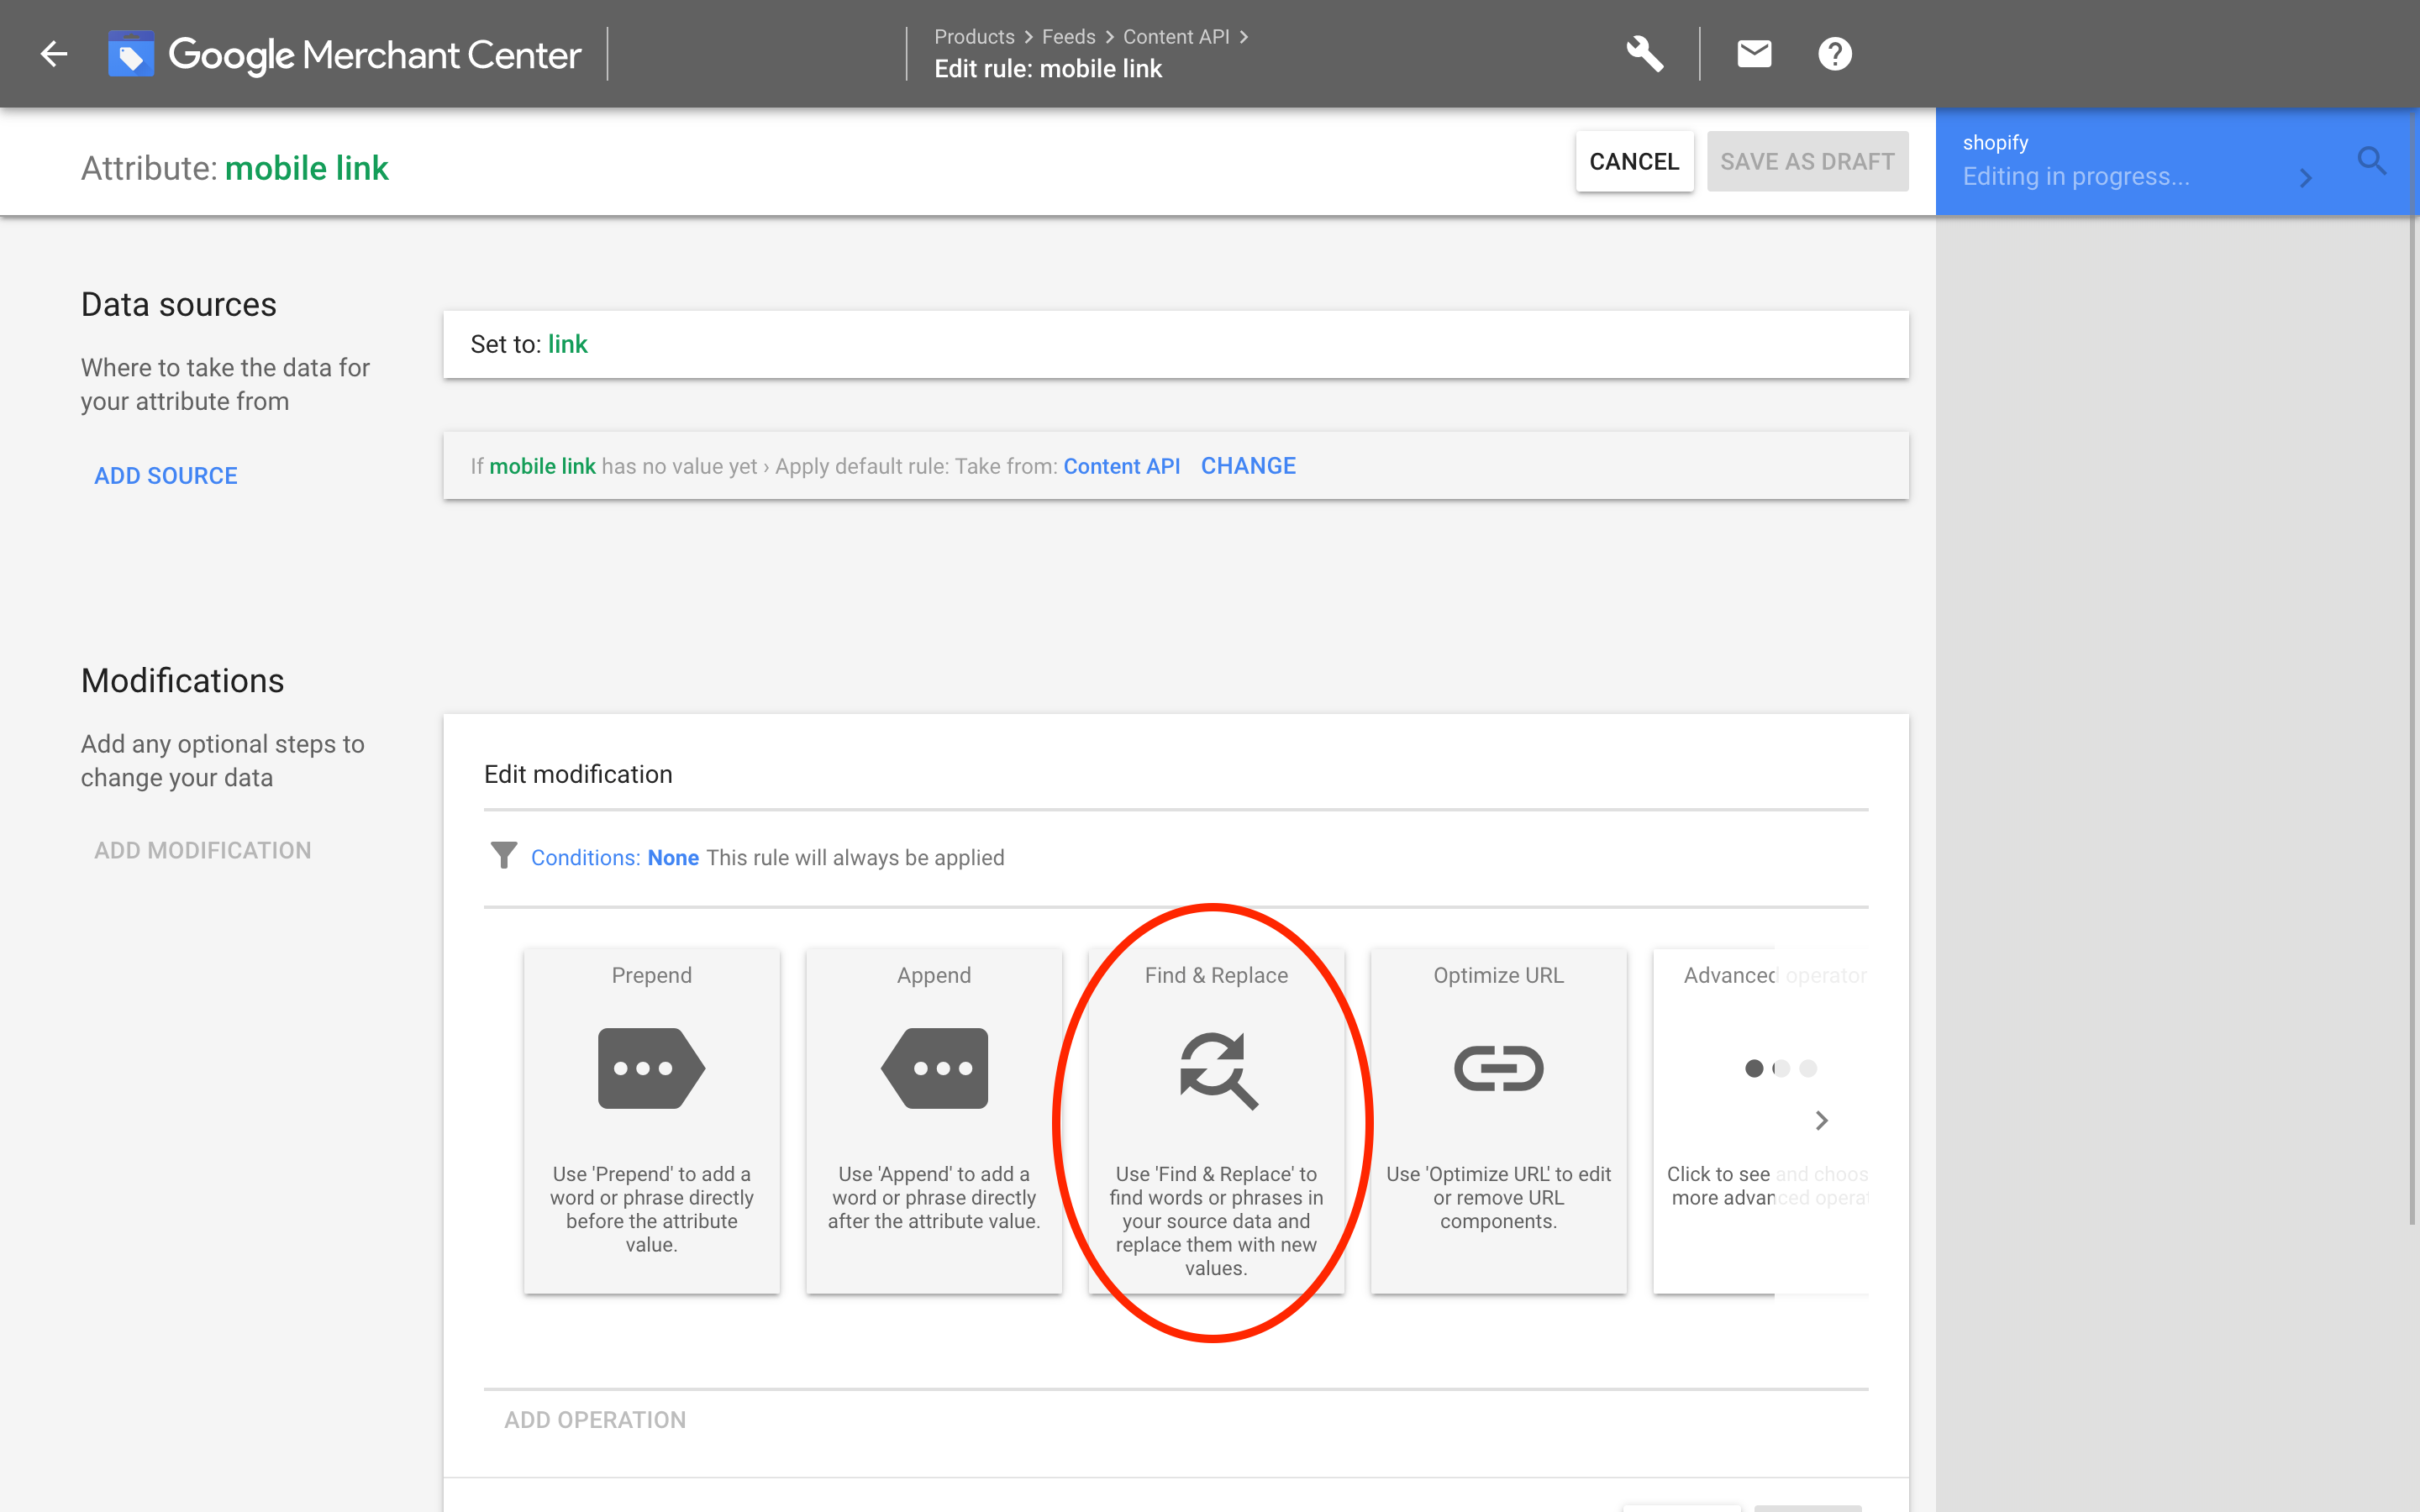 Google Merchants: Link modifications